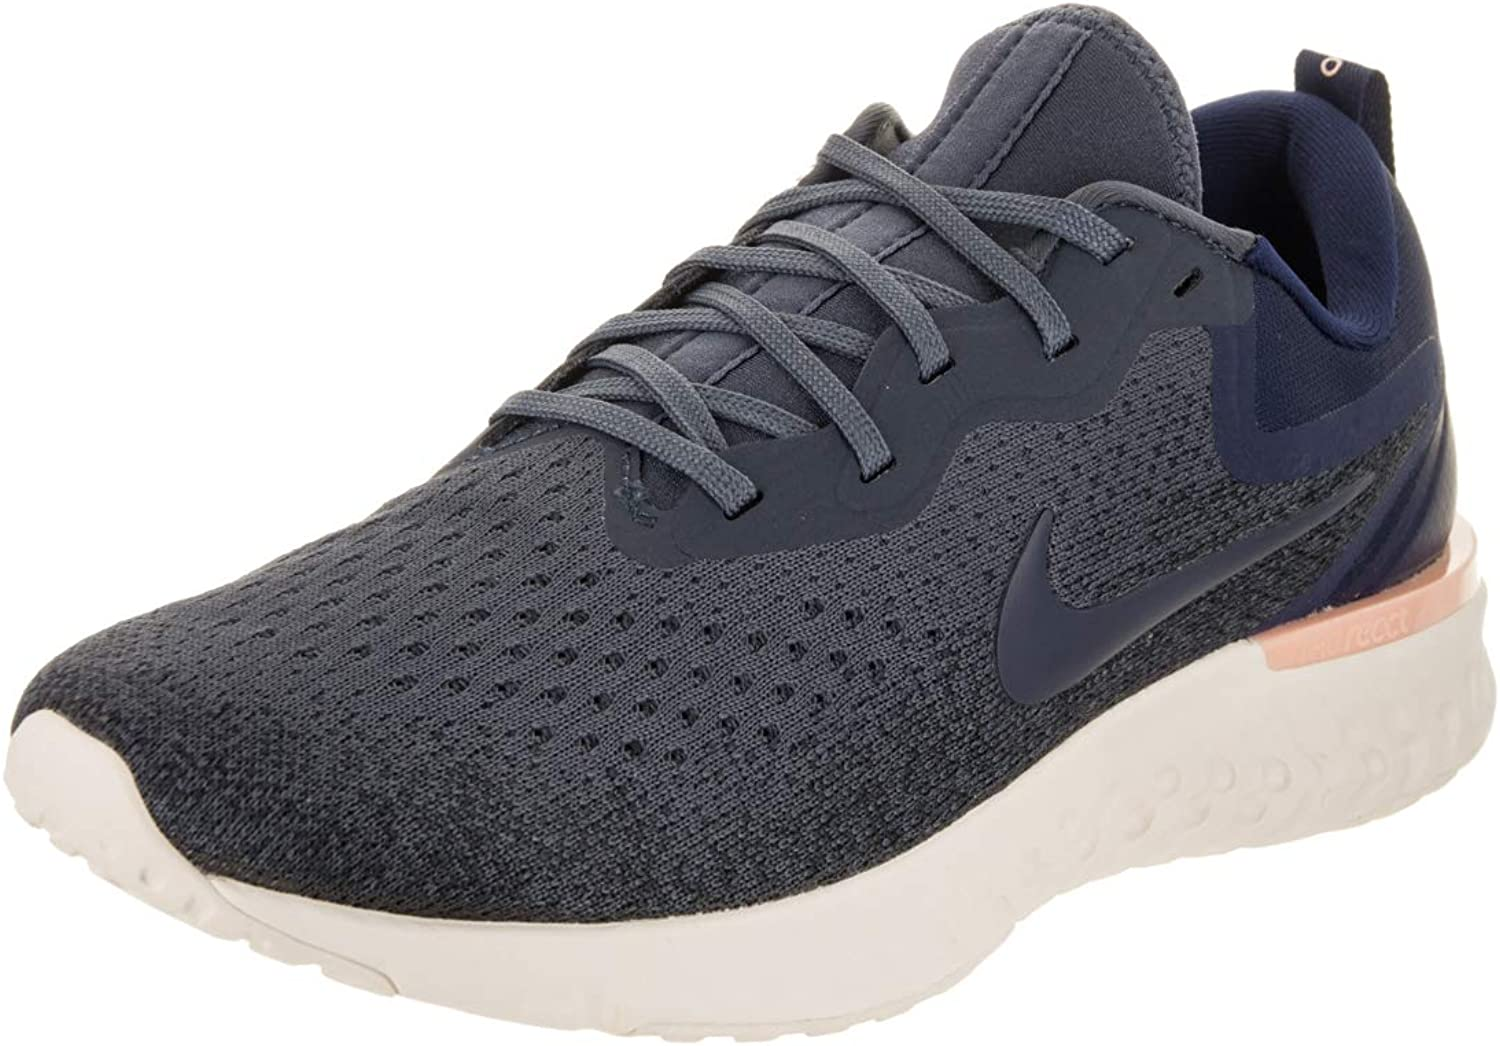 Nike Men's Odyssey React Running shoes